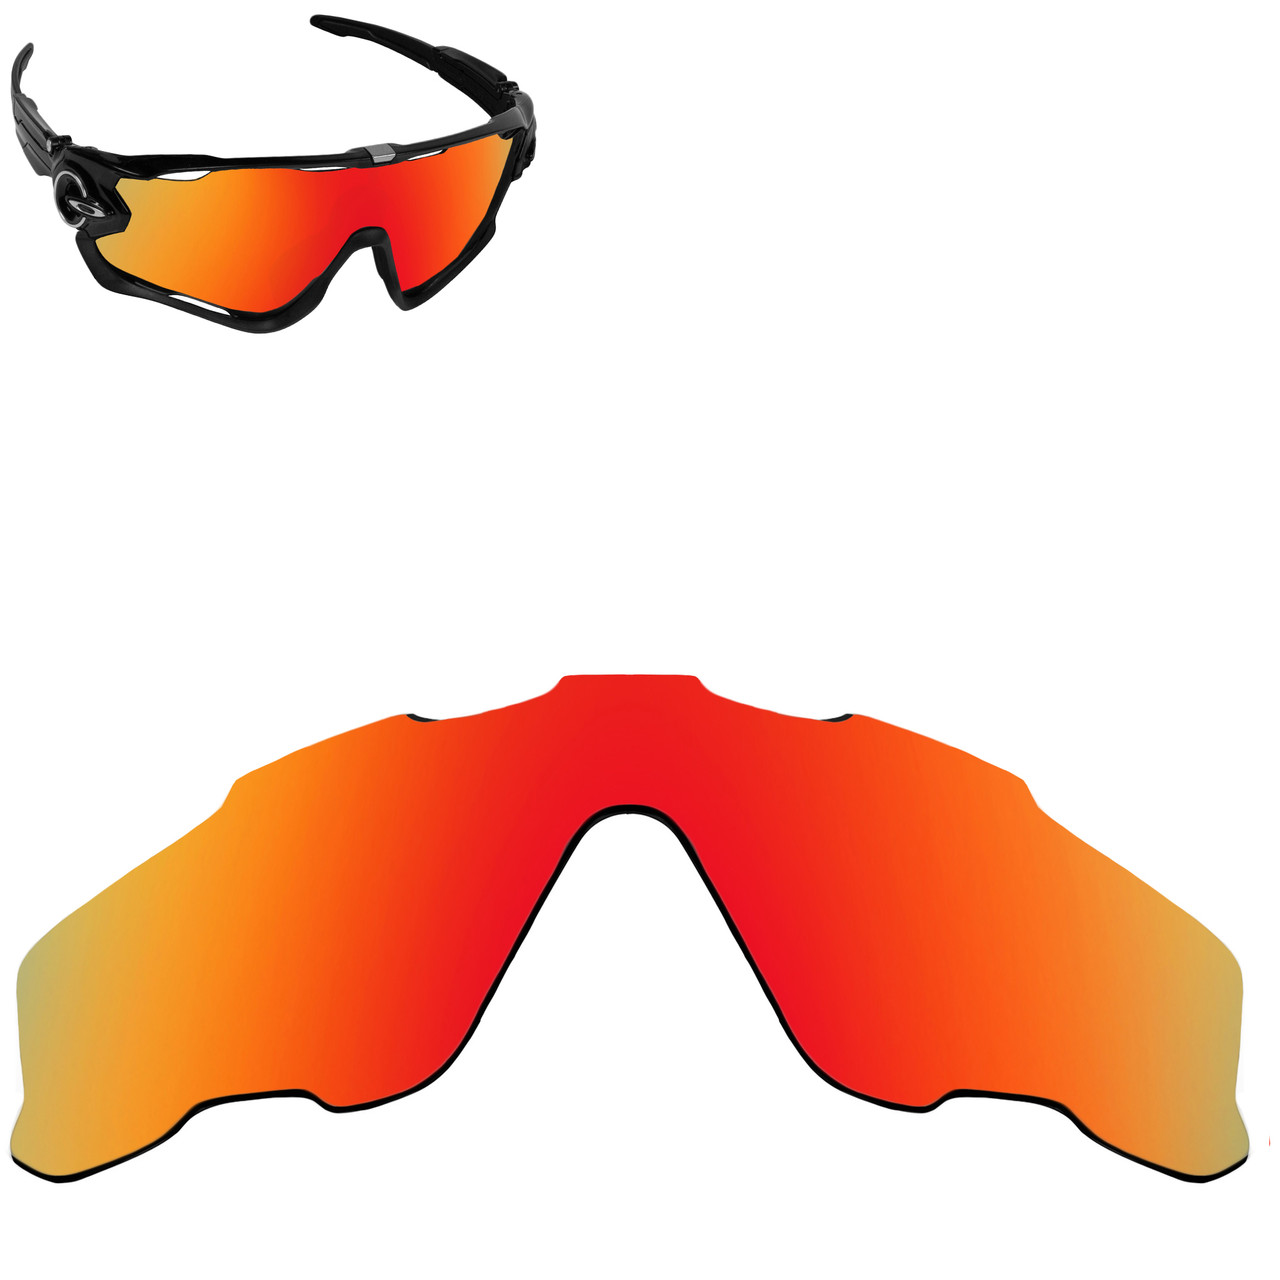 71e78cbcda Fits Oakley Jawbreaker - Seek Optics